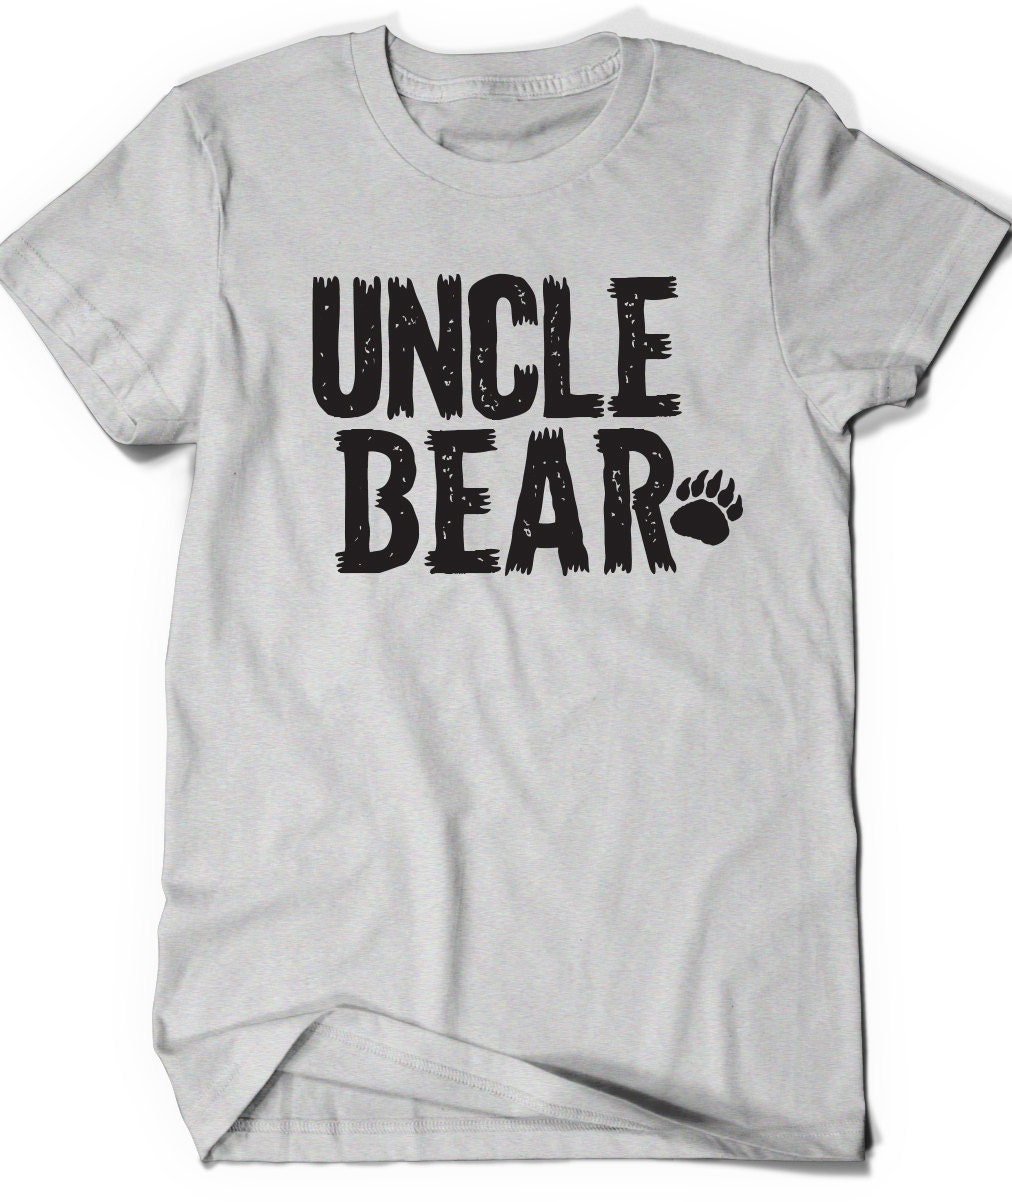 Uncle bear t shirt t shirt tee mens funny humor gift present for Bear river workwear shirts